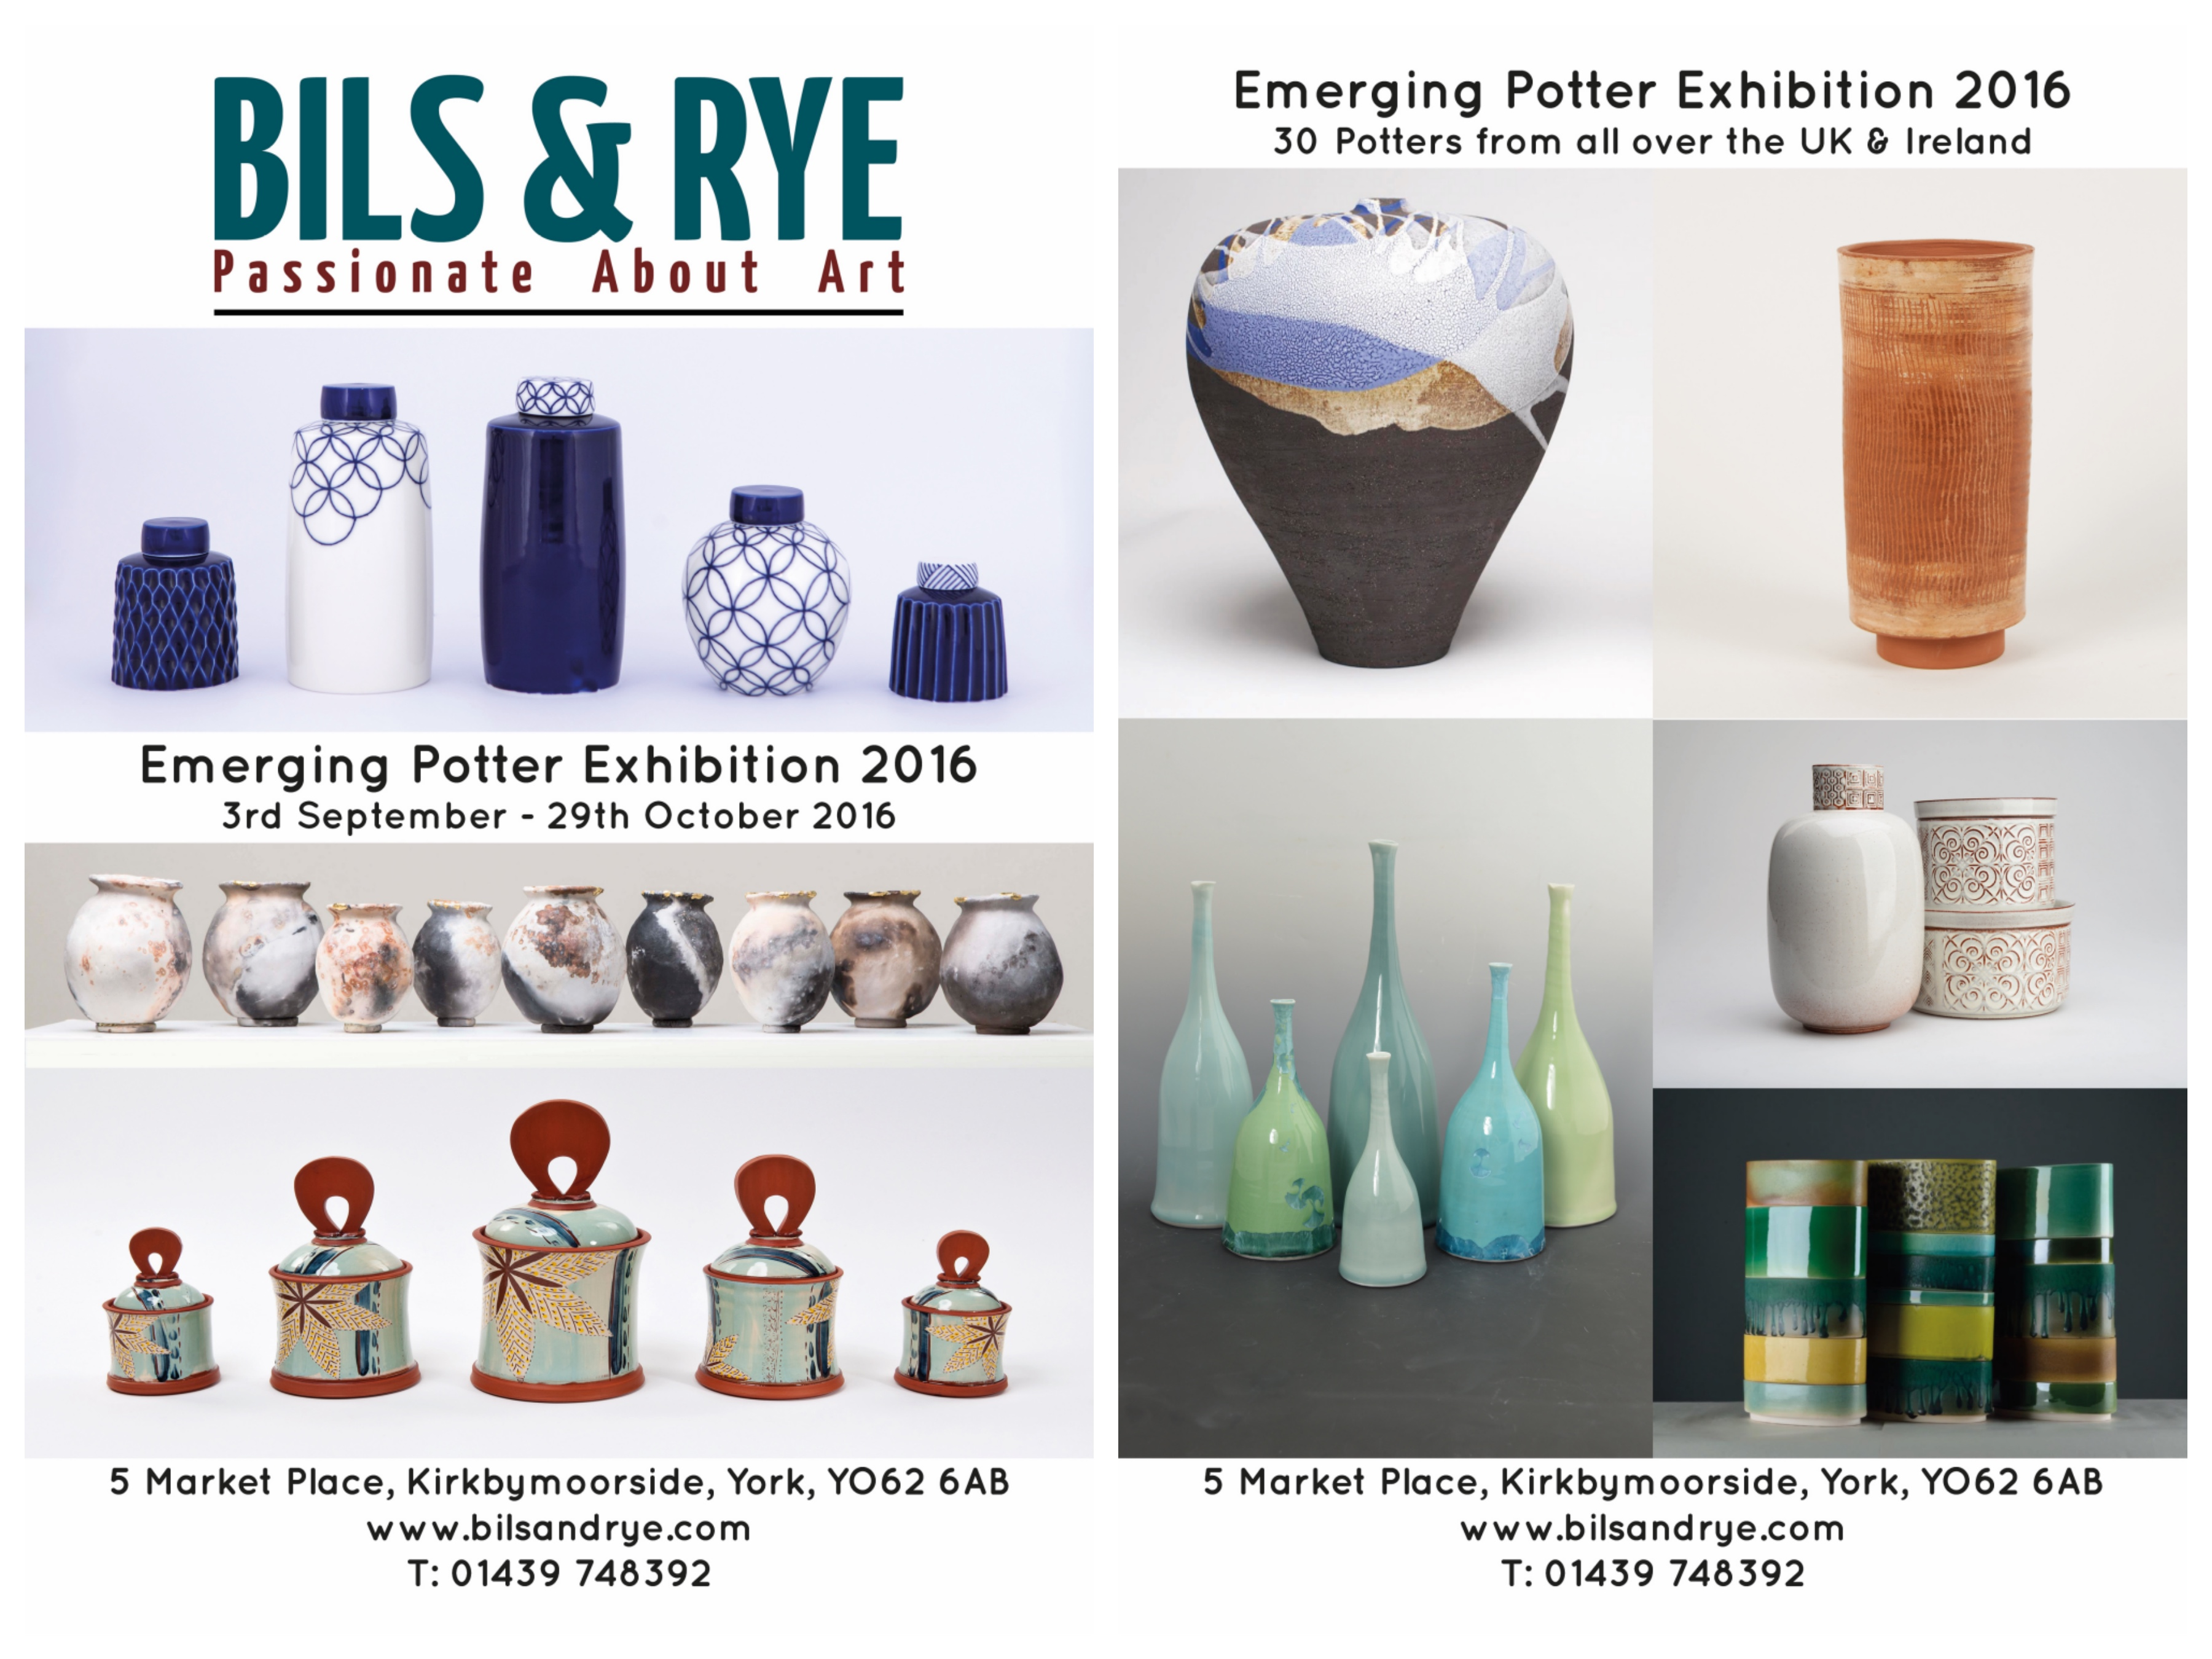 Emerging Potters Exhibition 2016